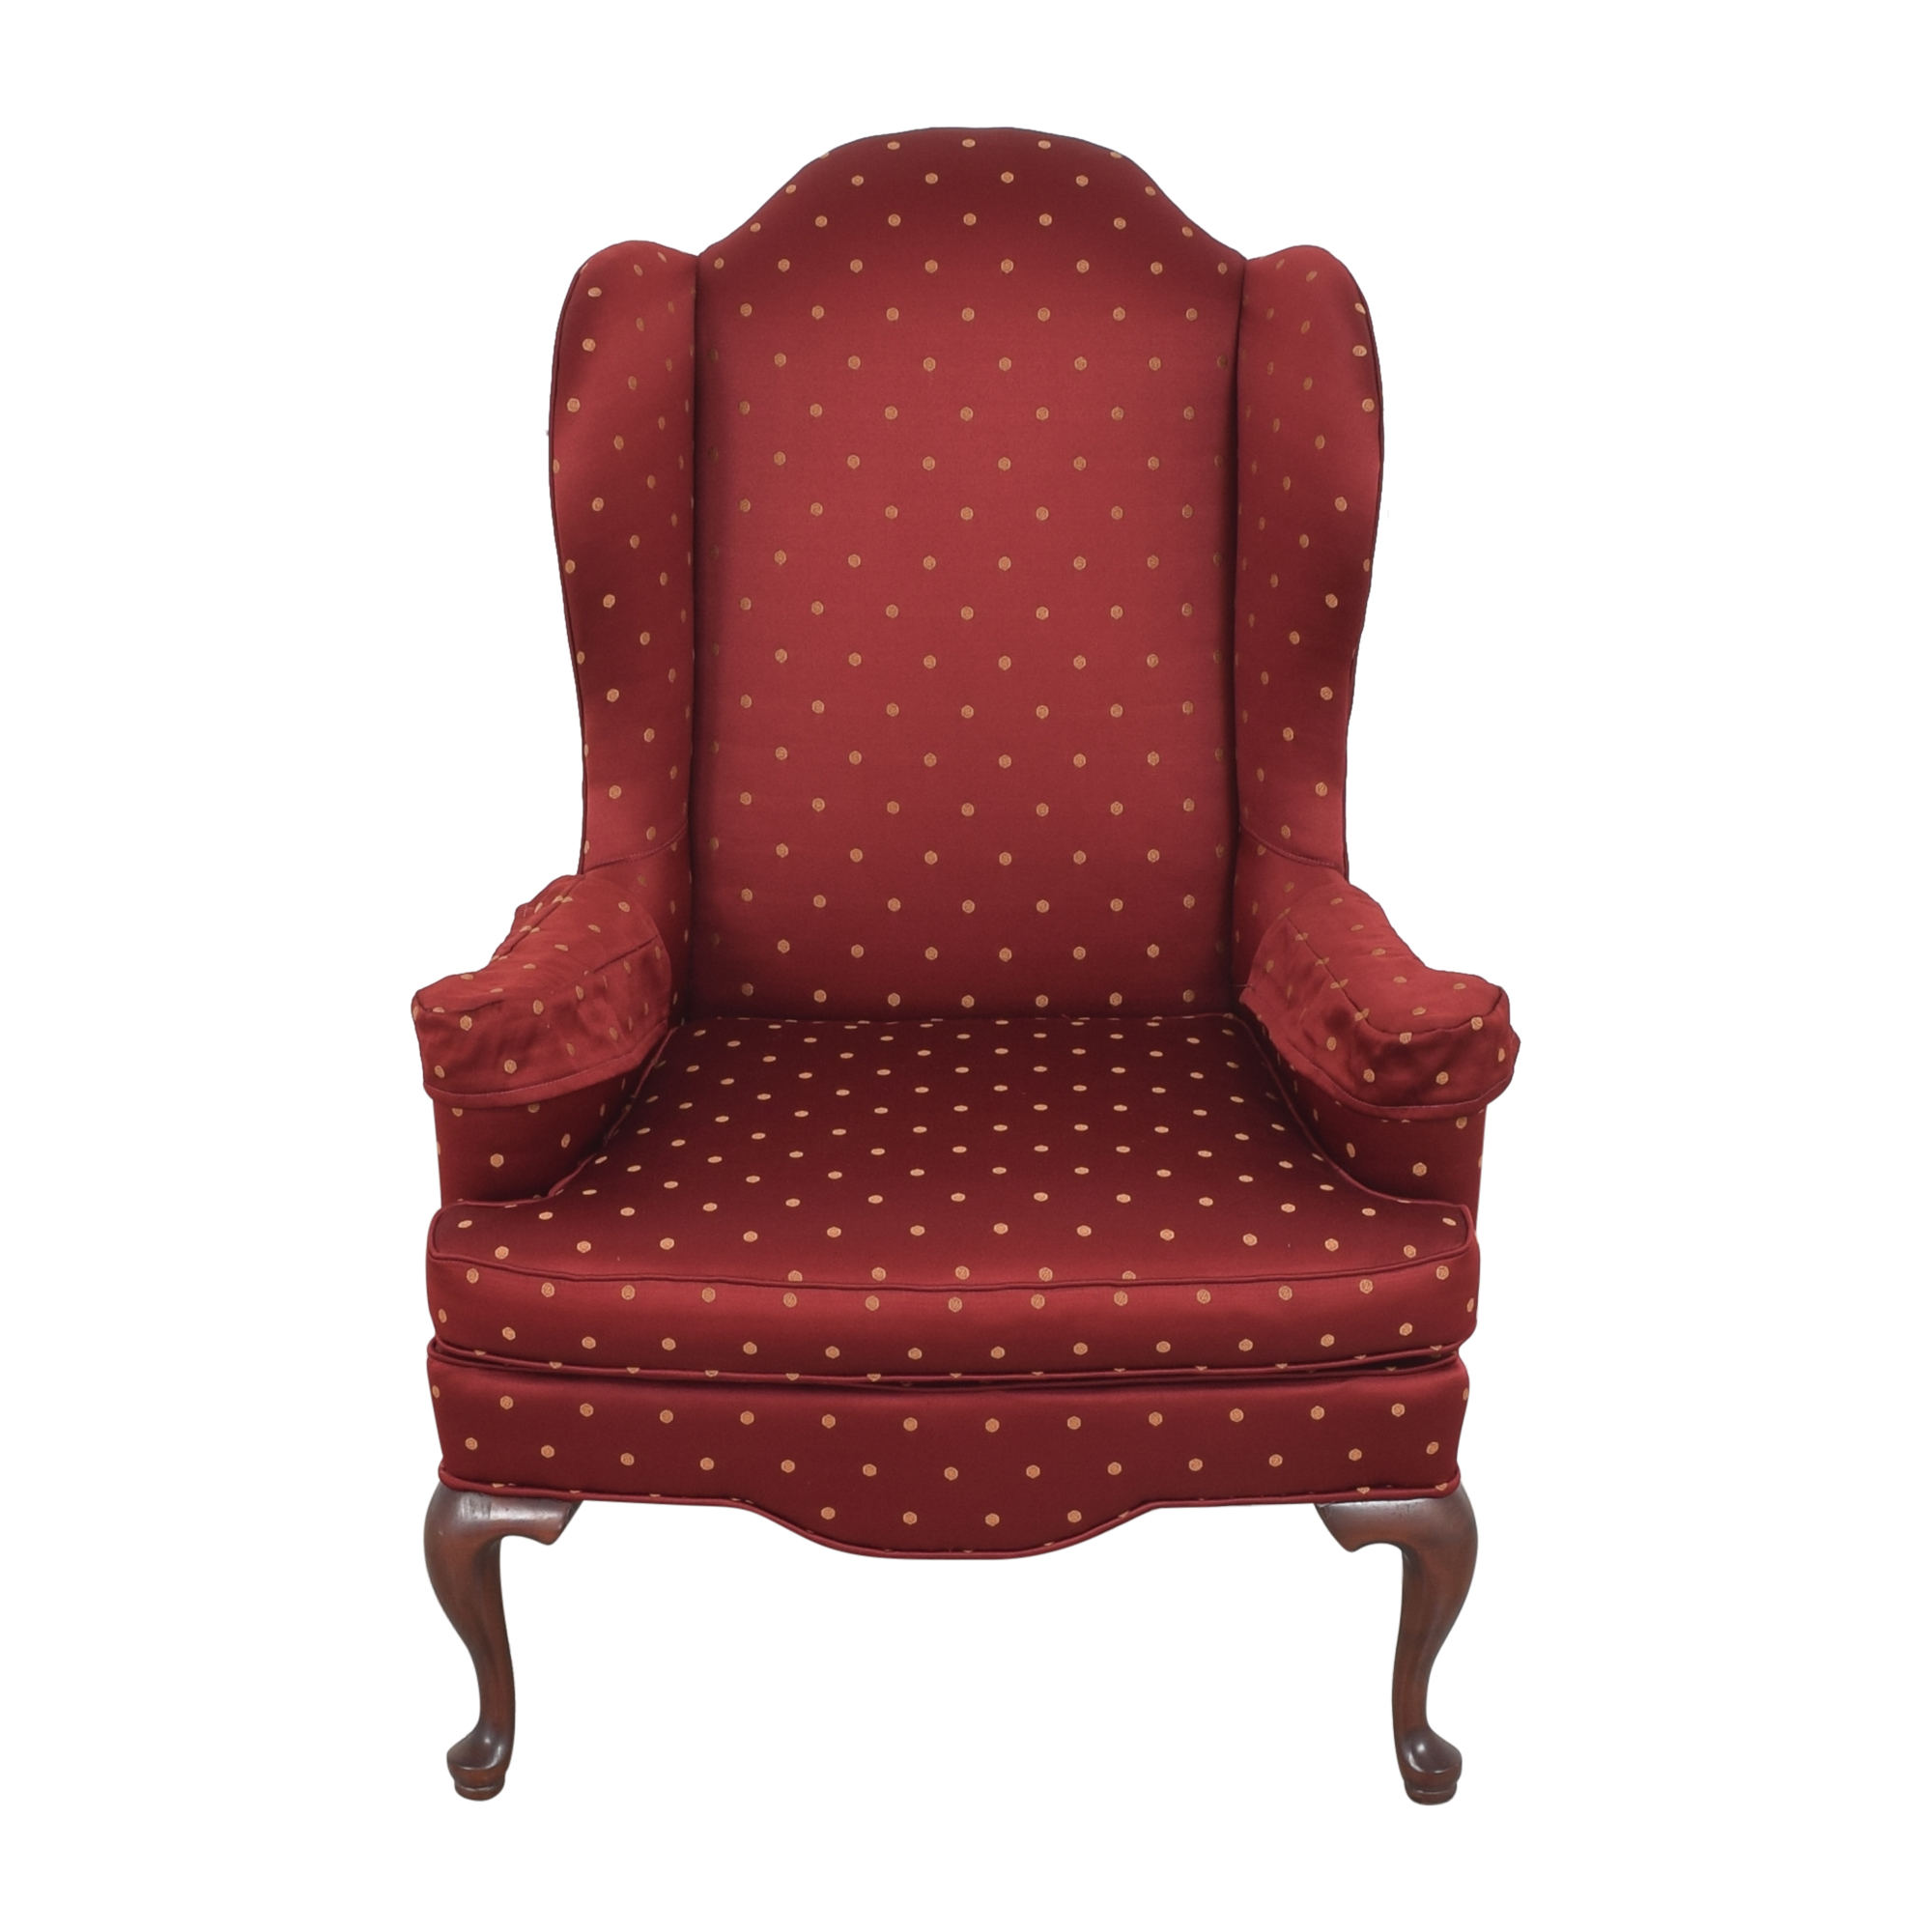 Ethan Allen Ethan Allen Wingback Arm Chair used